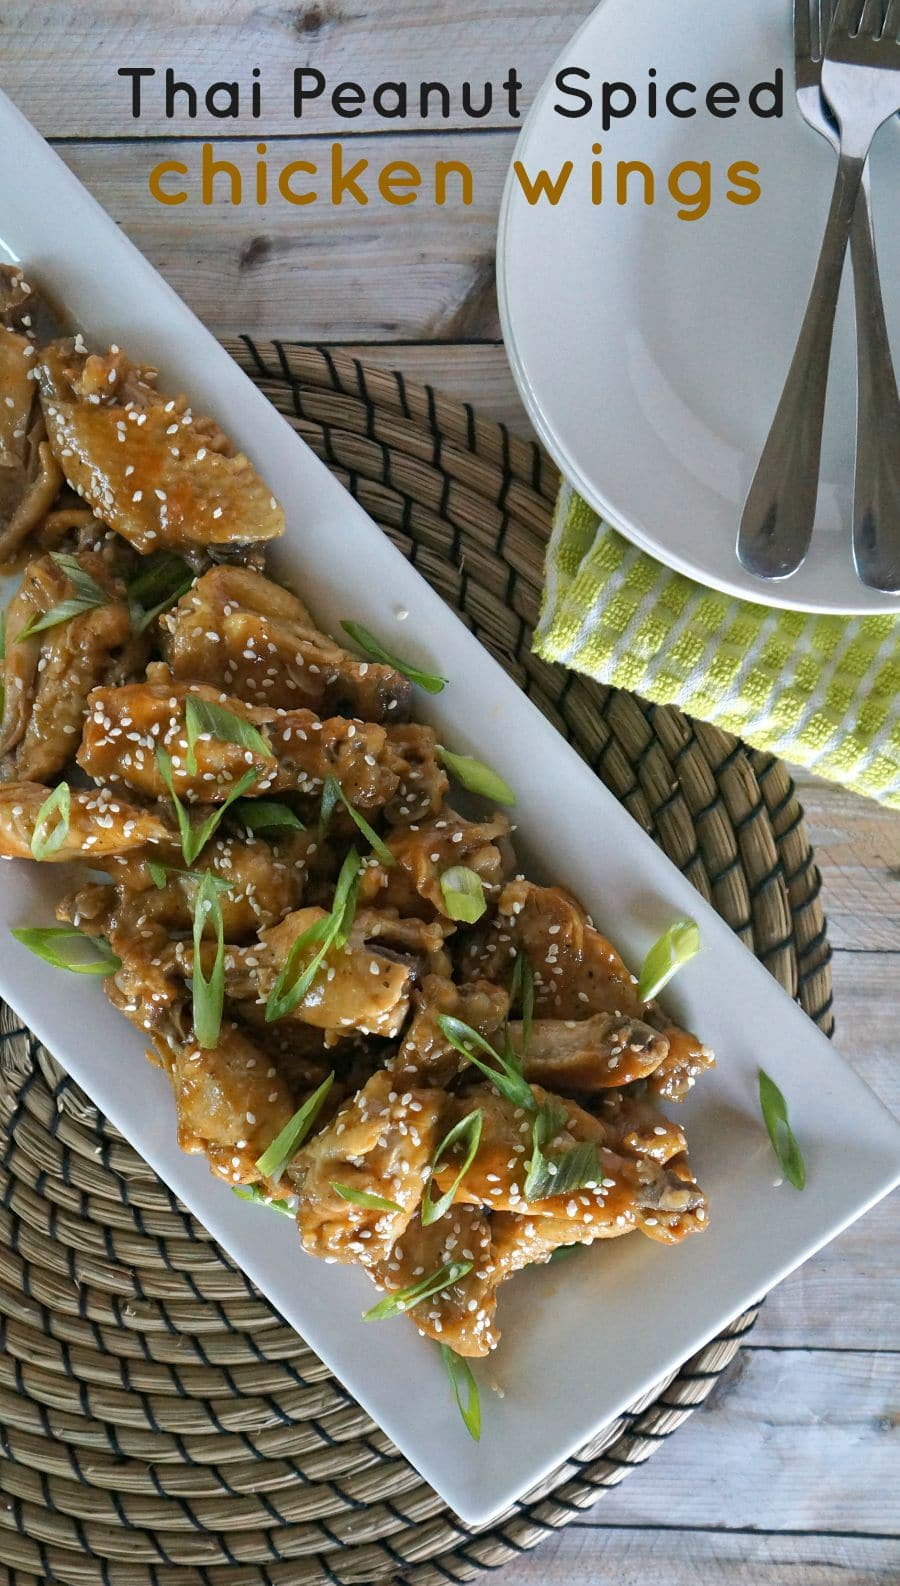 Thai Peanut Spiced Chicken Wings in the Slow Cooker